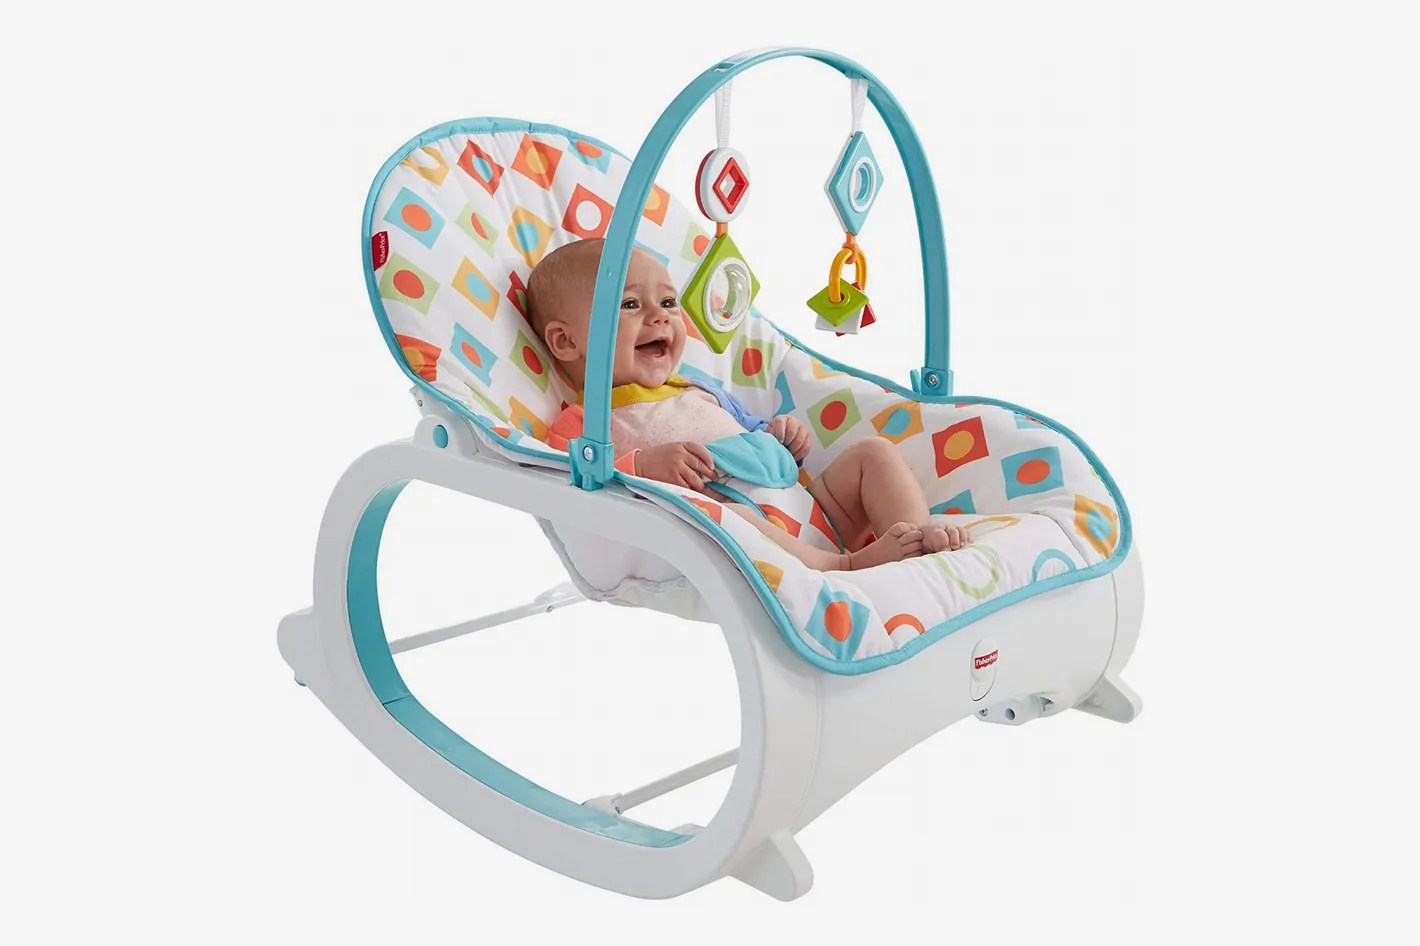 Baby Sleep In Bouncer Or Swing 9 Best Baby Bouncers According To Reviewers 2019 The